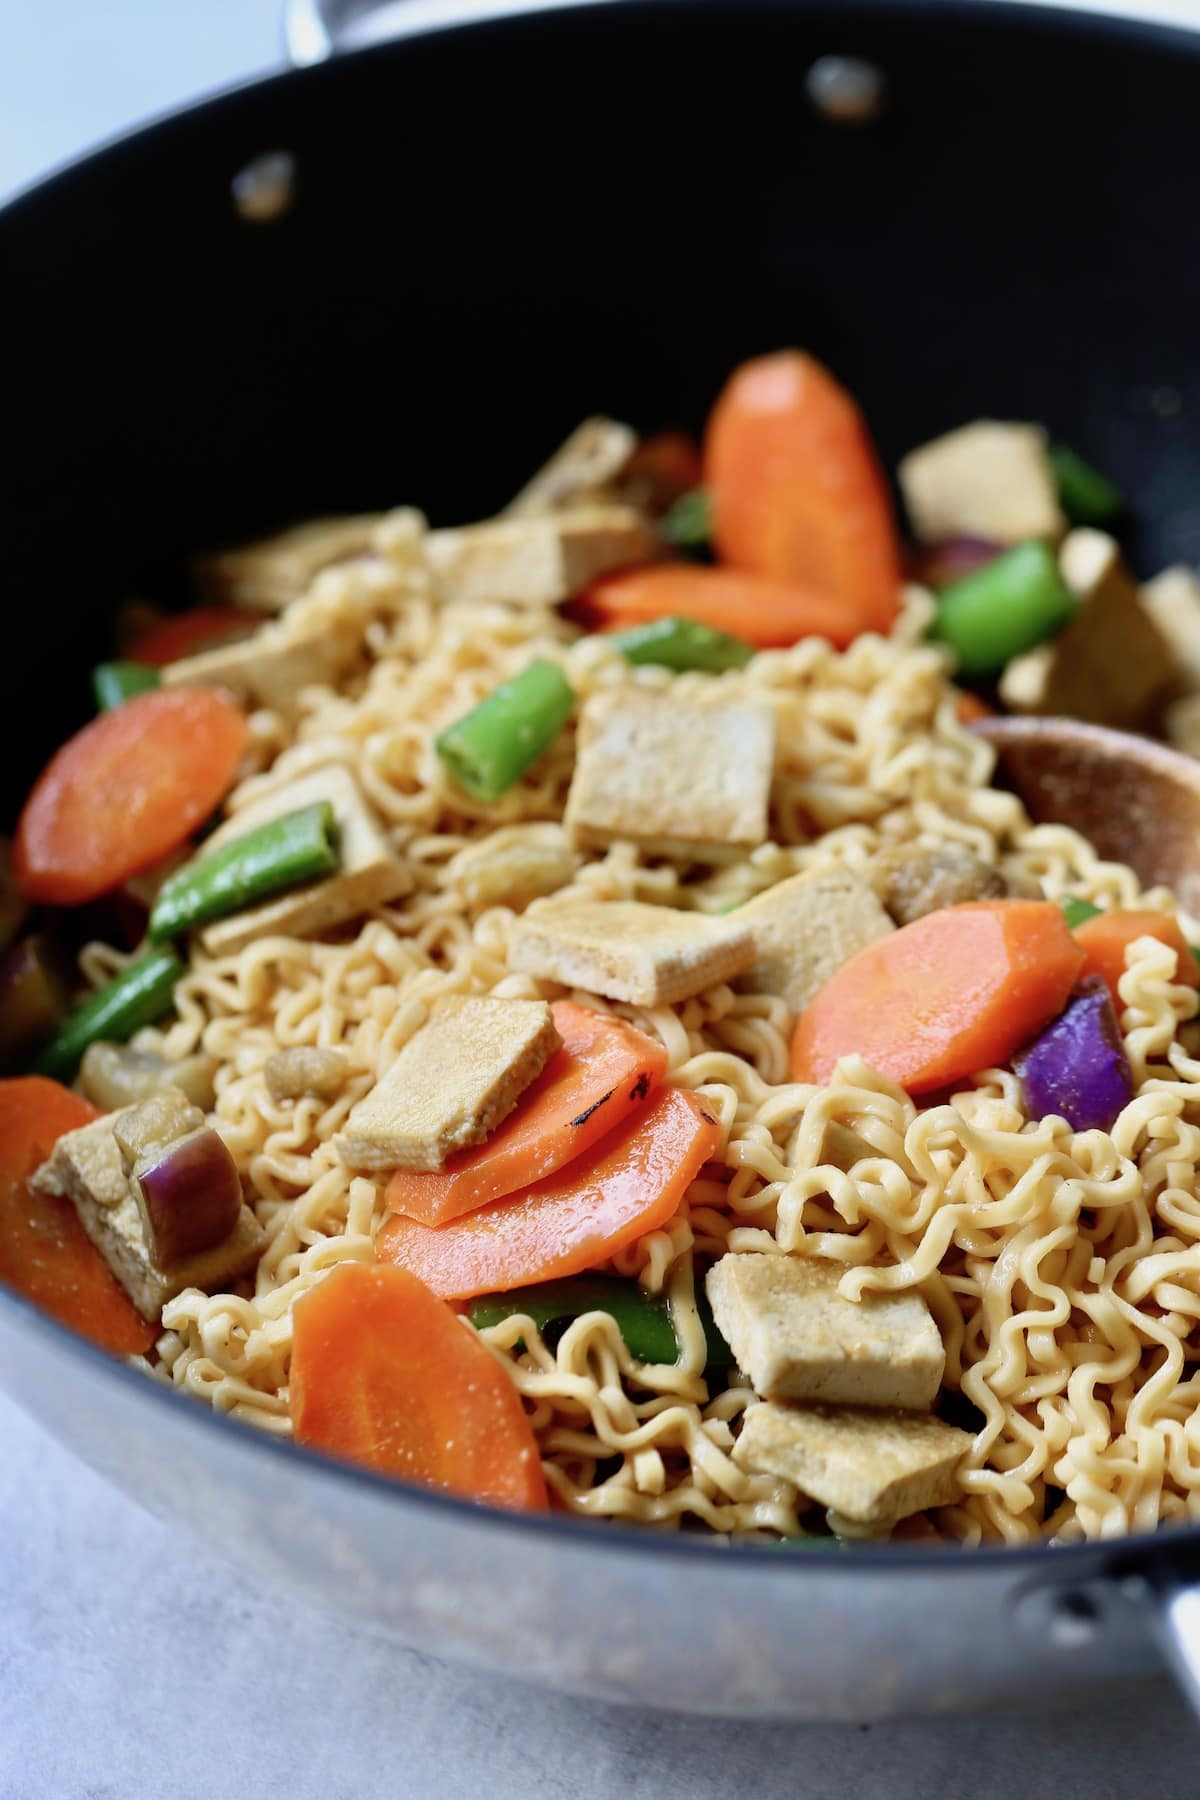 miso noodles, veggies and tofu in a wok